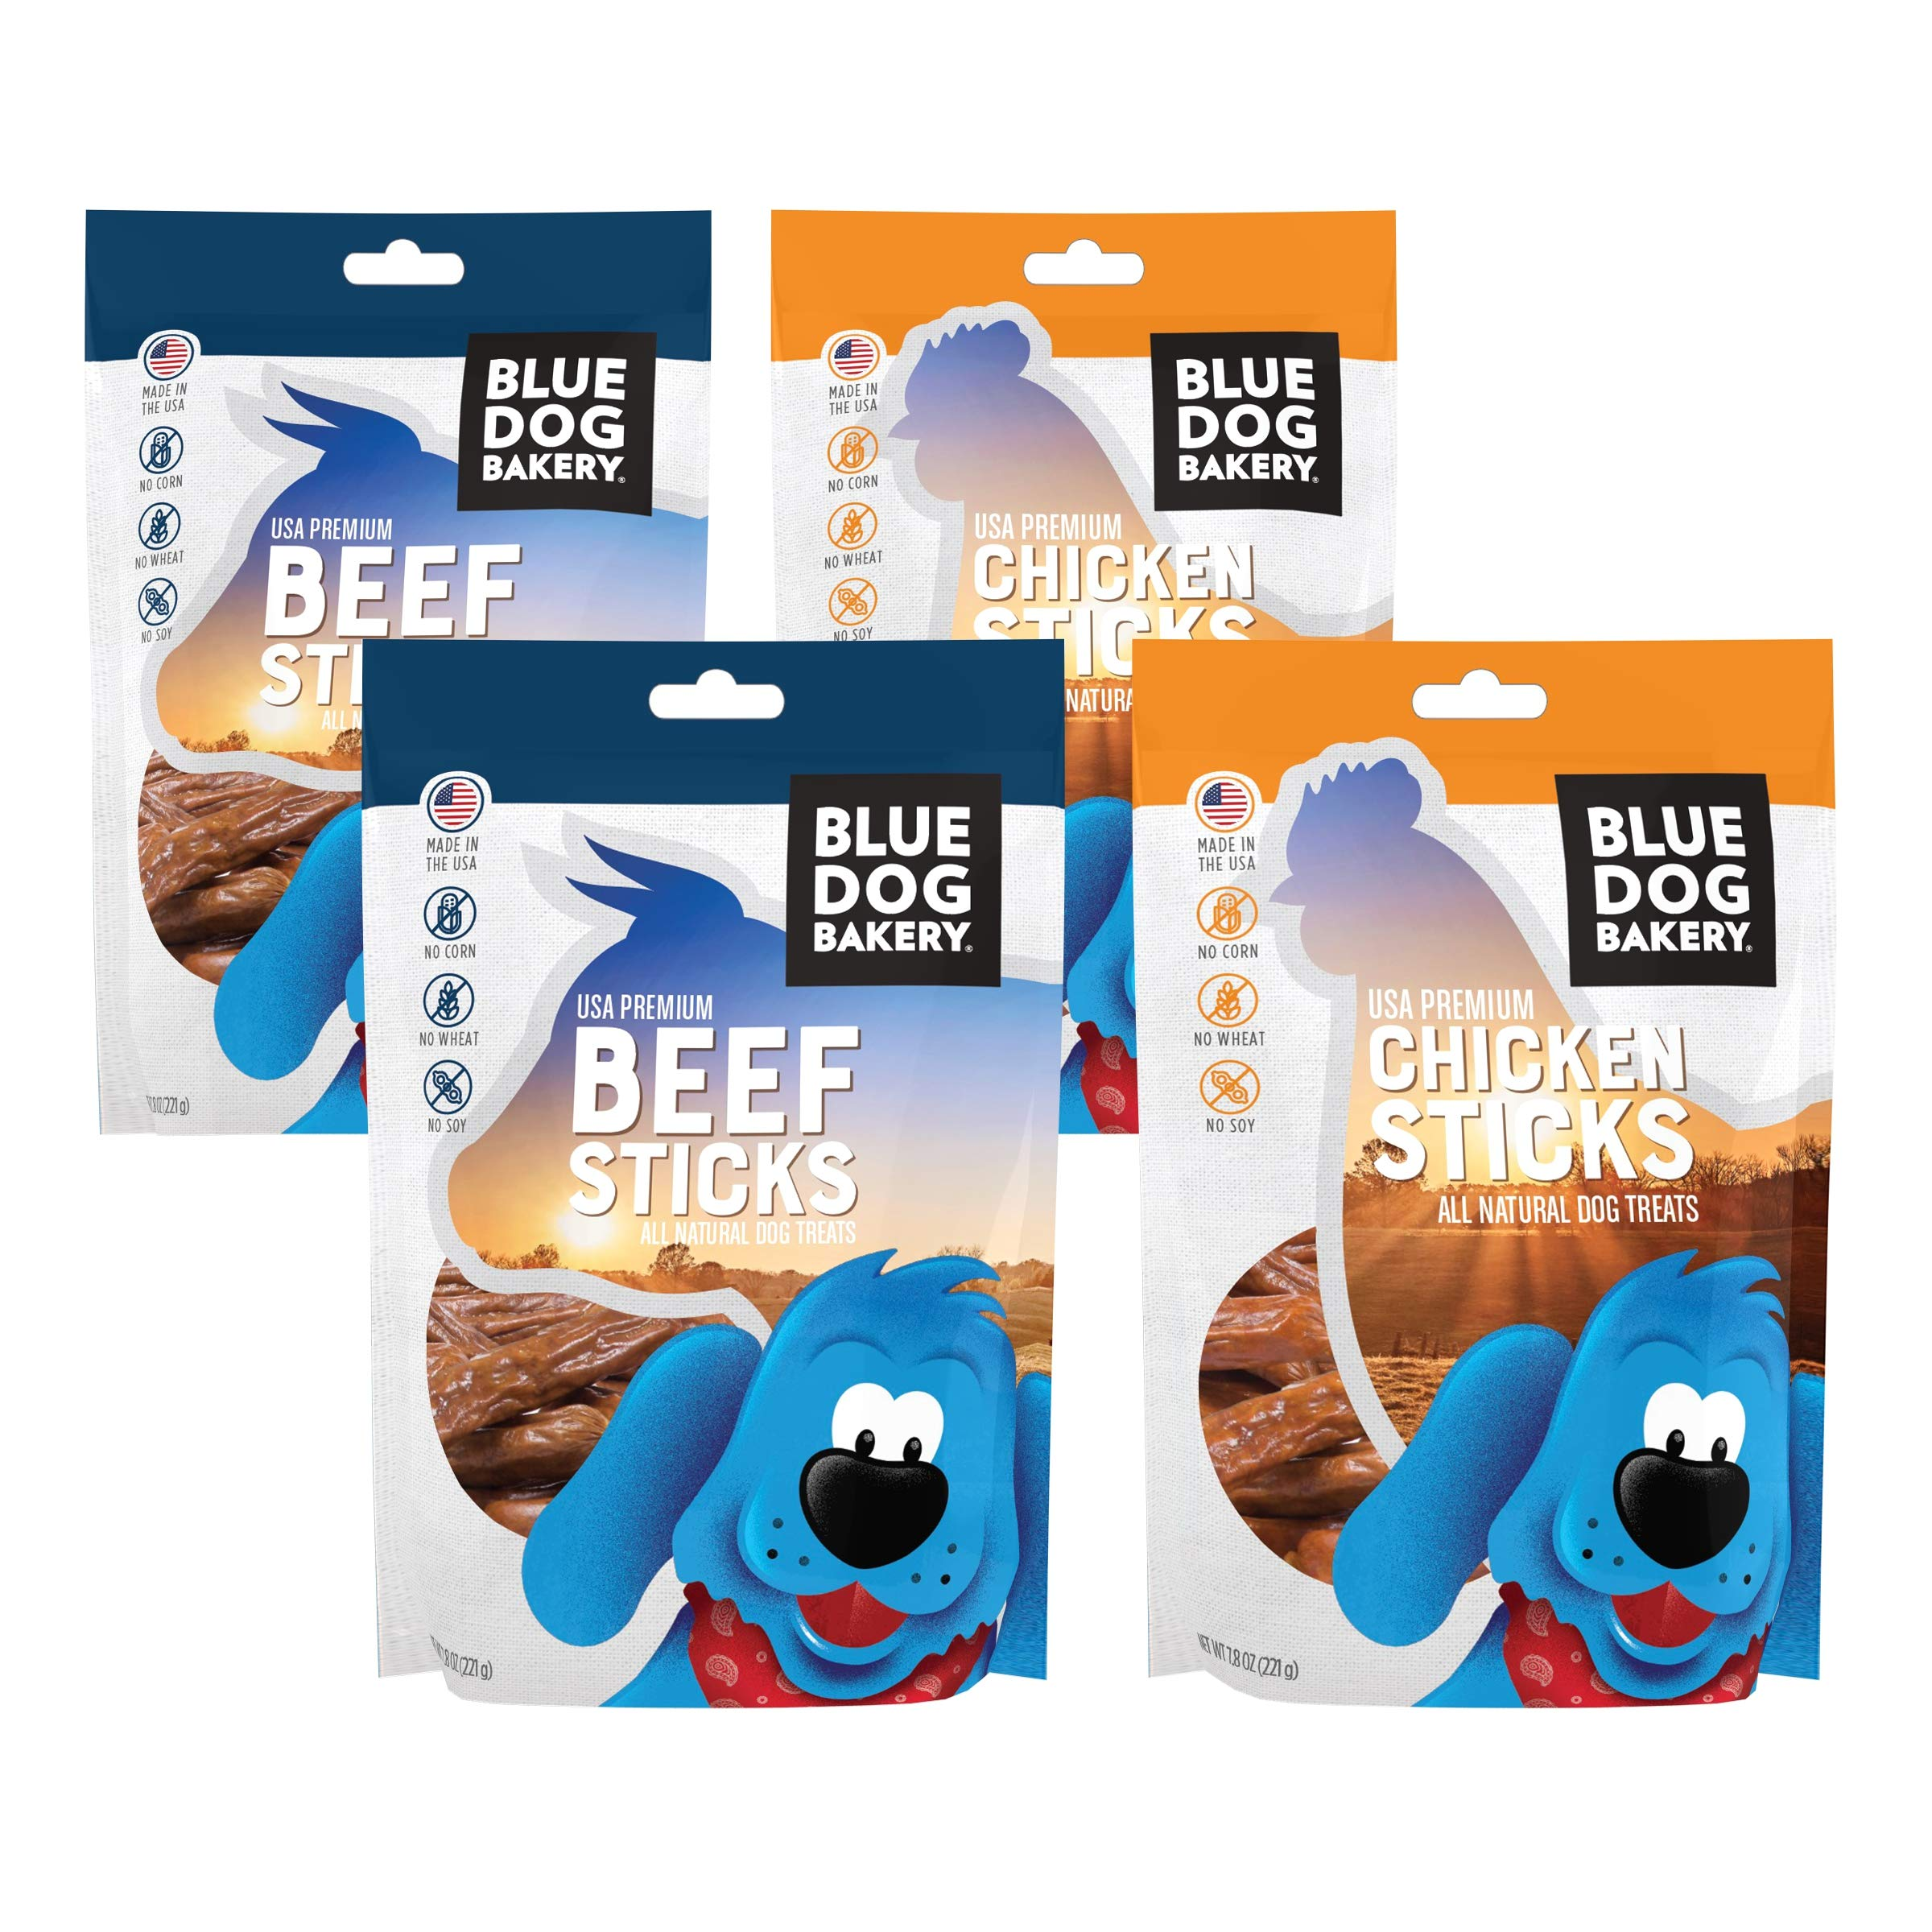 Blue Dog Bakery Natural Dog Treats, 7.8oz 4 Pack, Grain Free, USA Premium Beef and Chicken Sticks